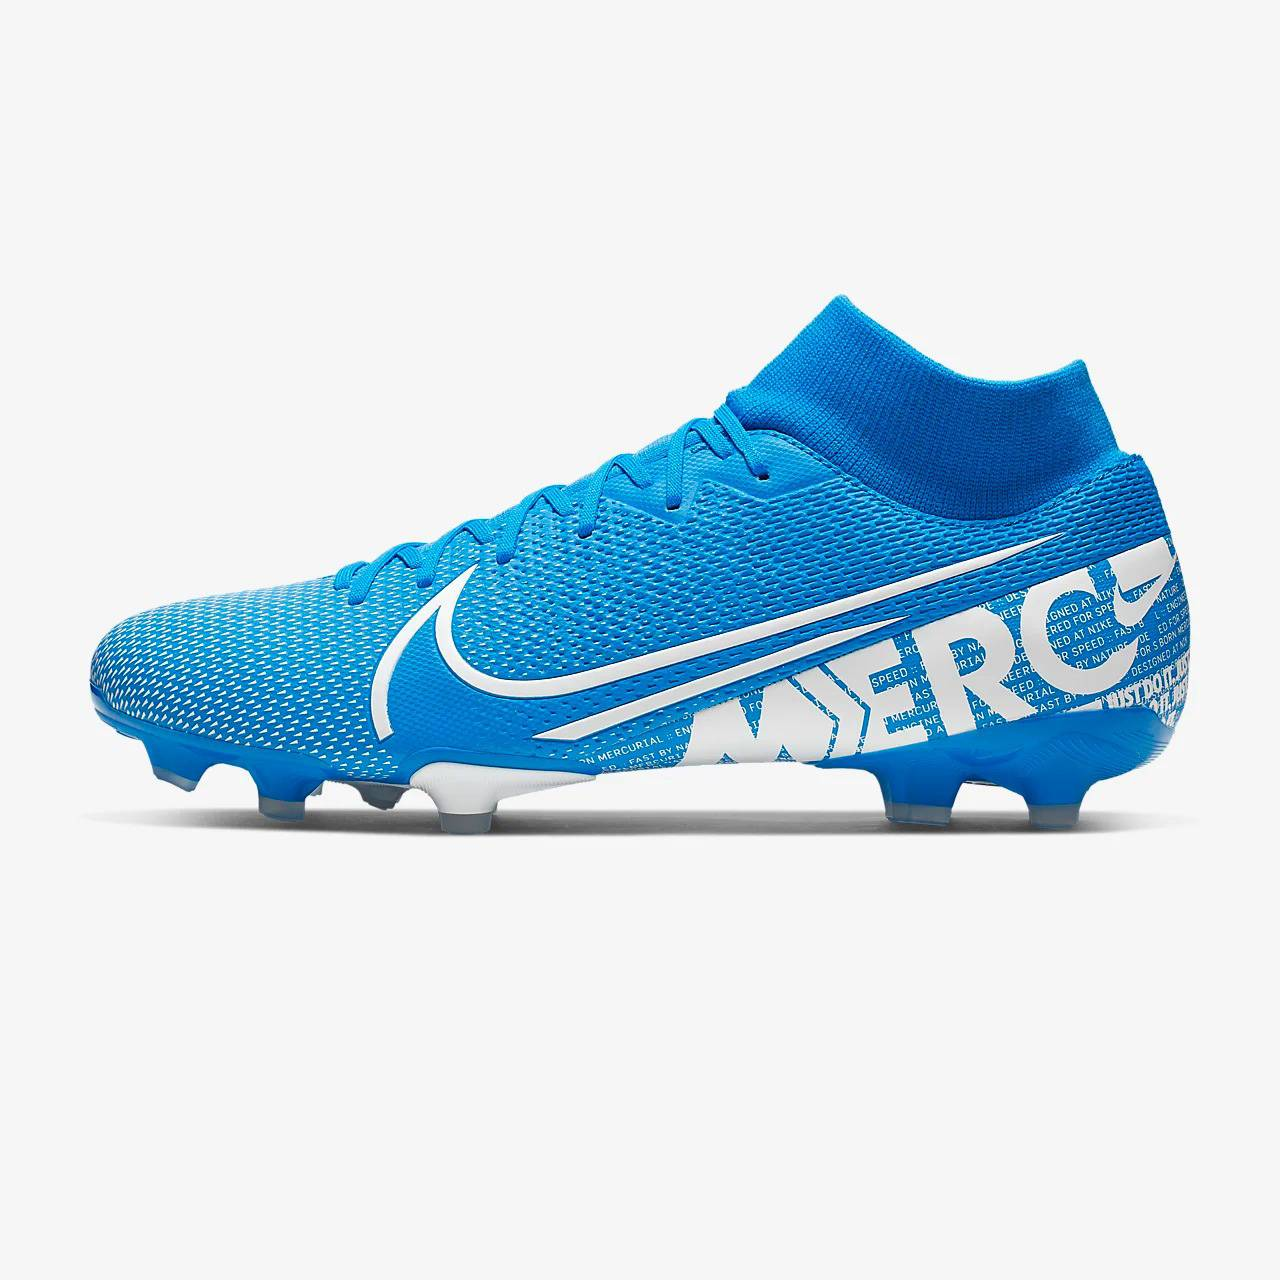 Футбольные бутсы Nike Superfly VII Academy FG/MG AT7946-414 SR